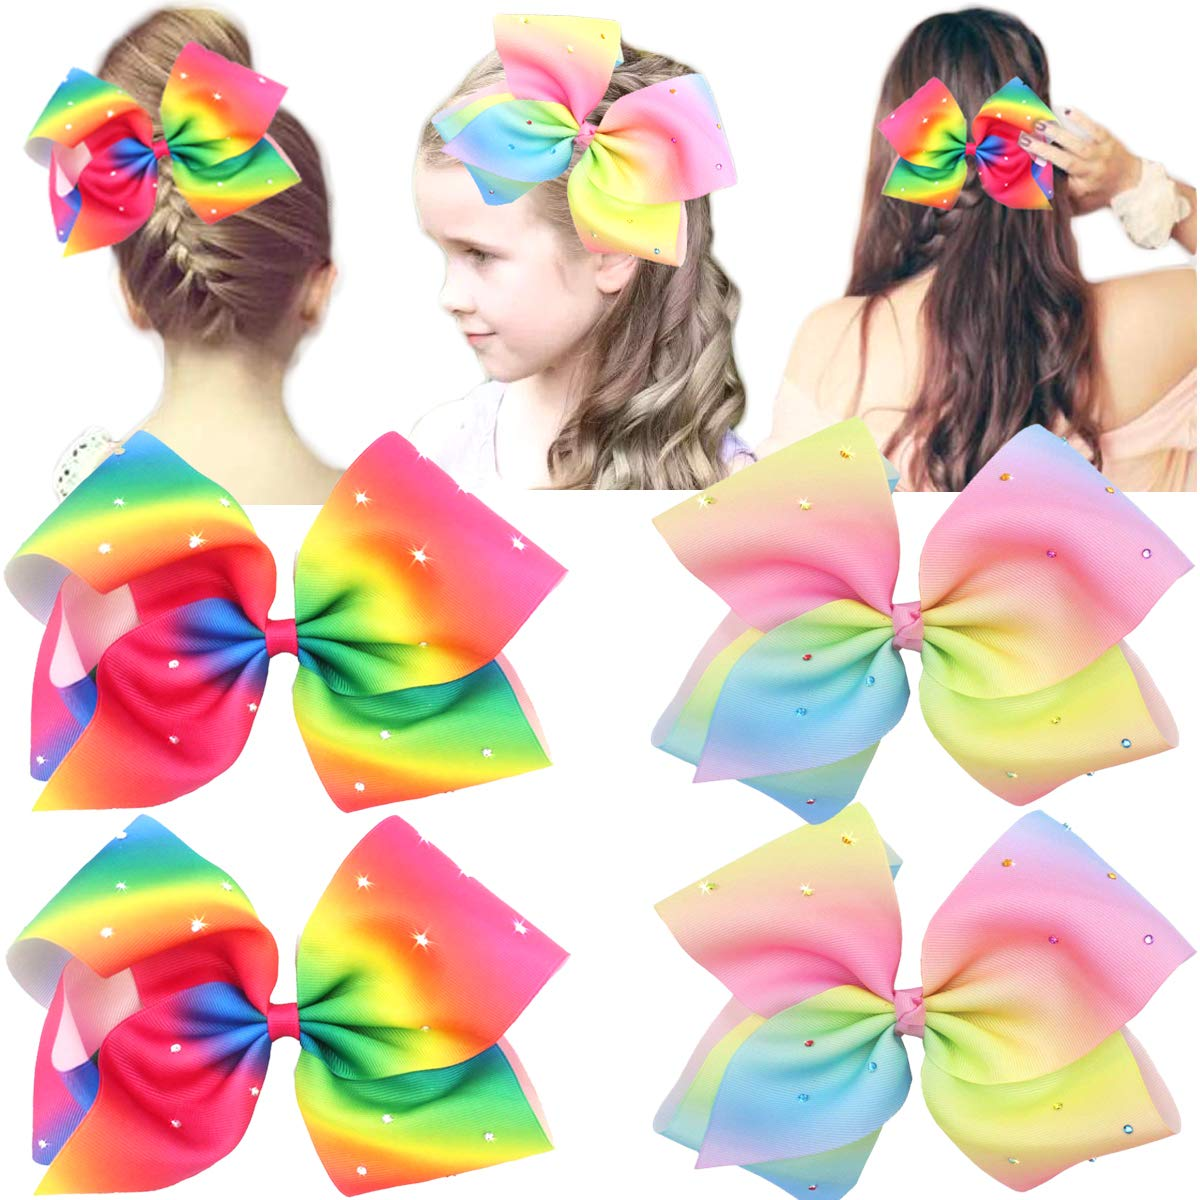 Girls Bows Alligator Clip Hand Tied Bow Cute Bows 345 inches Glittery Bows A Pair of Glittery Bow